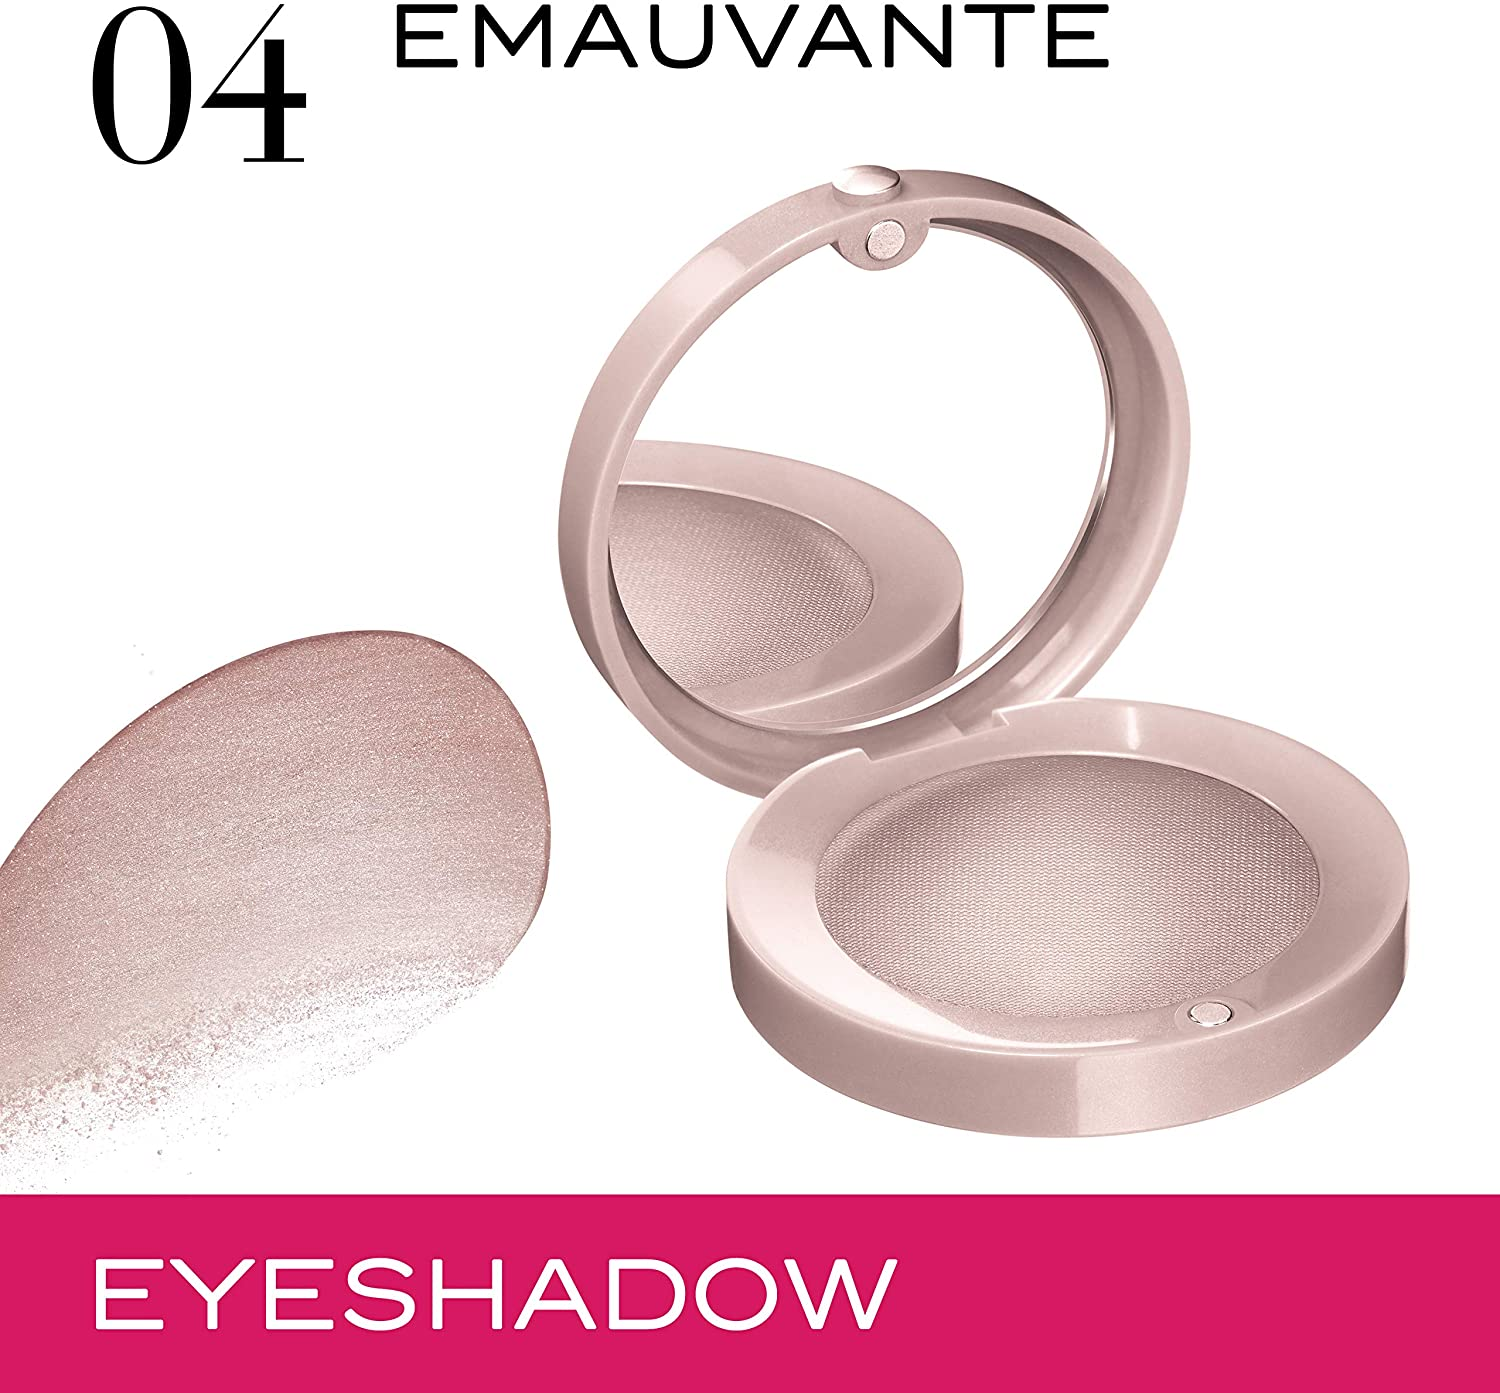 Bourjois, Little Round Pot. Eyeshadows 1.7g -04 Emauvante